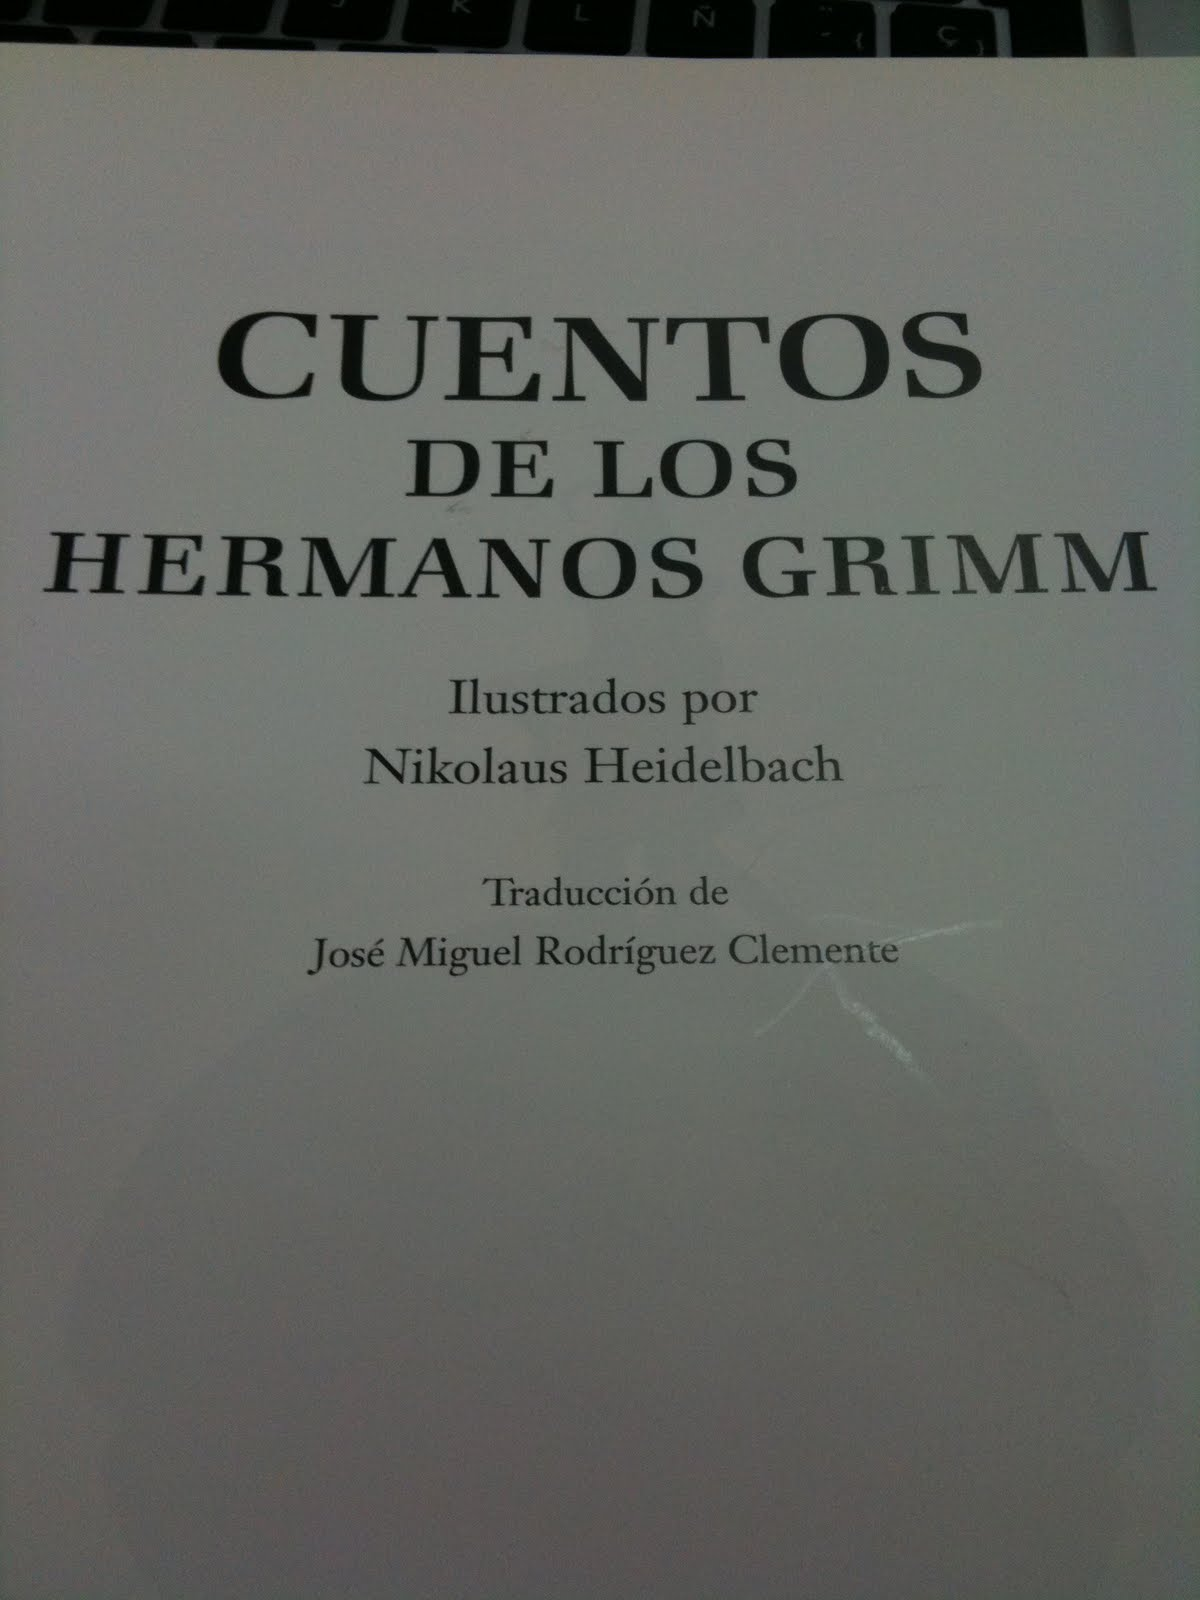 Libros De Los Hermanos Grimm People Teaching People Mayo 2011